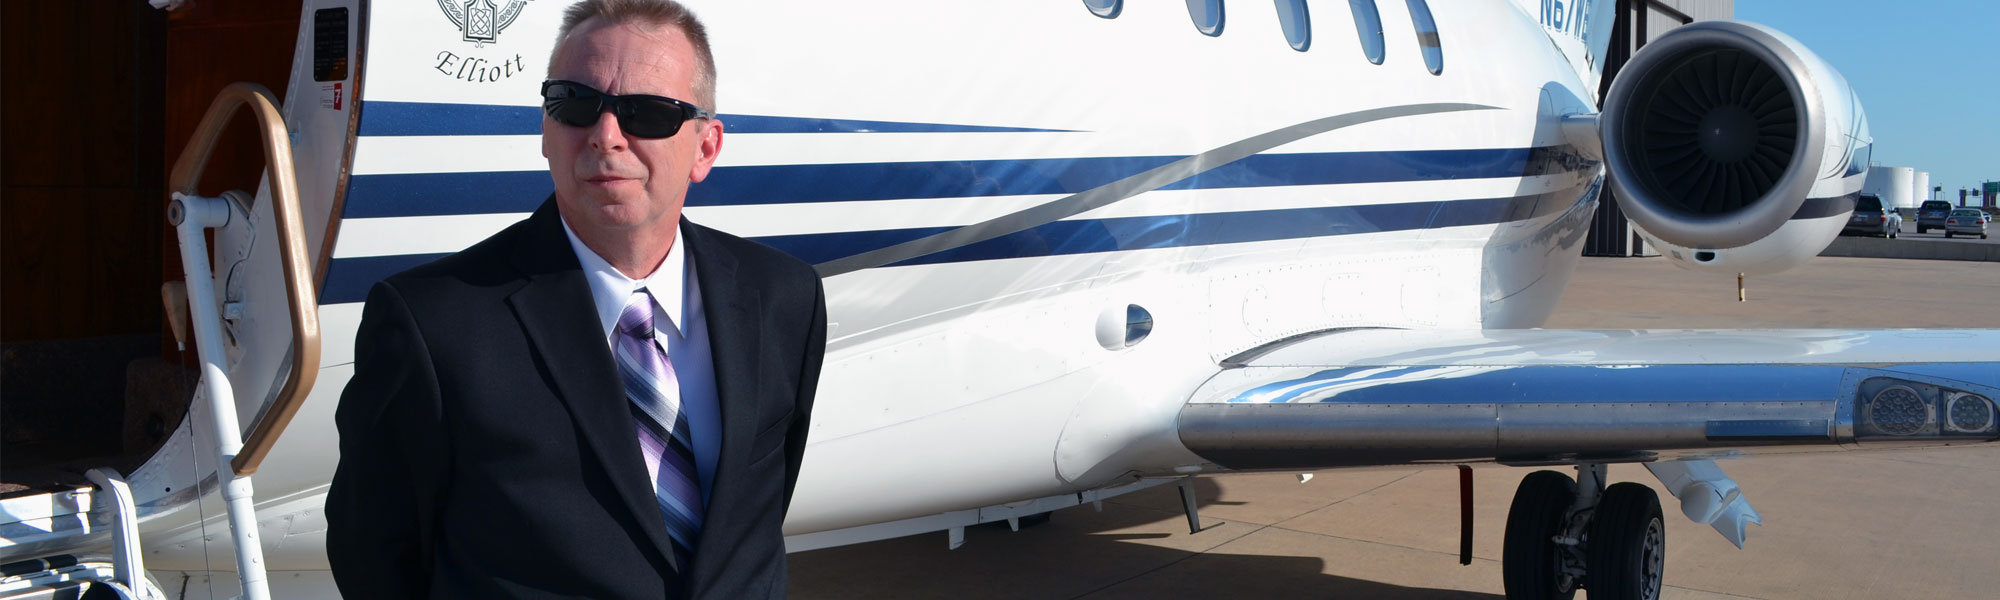 Mark next to a private jet